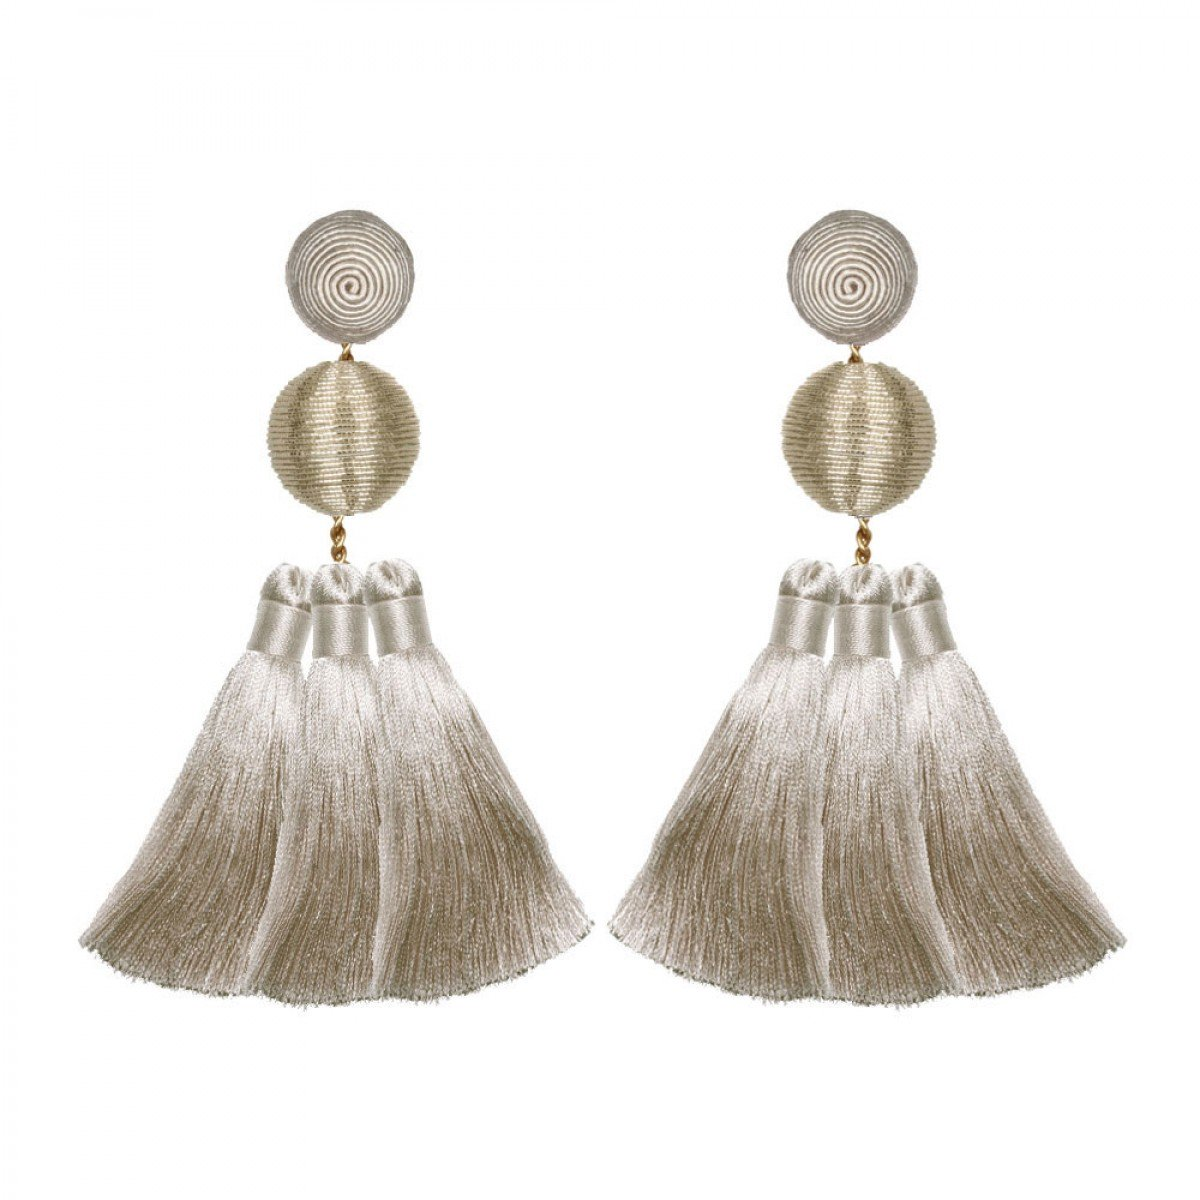 Triple Tassel Grey Earrings by SUZANNA DAI